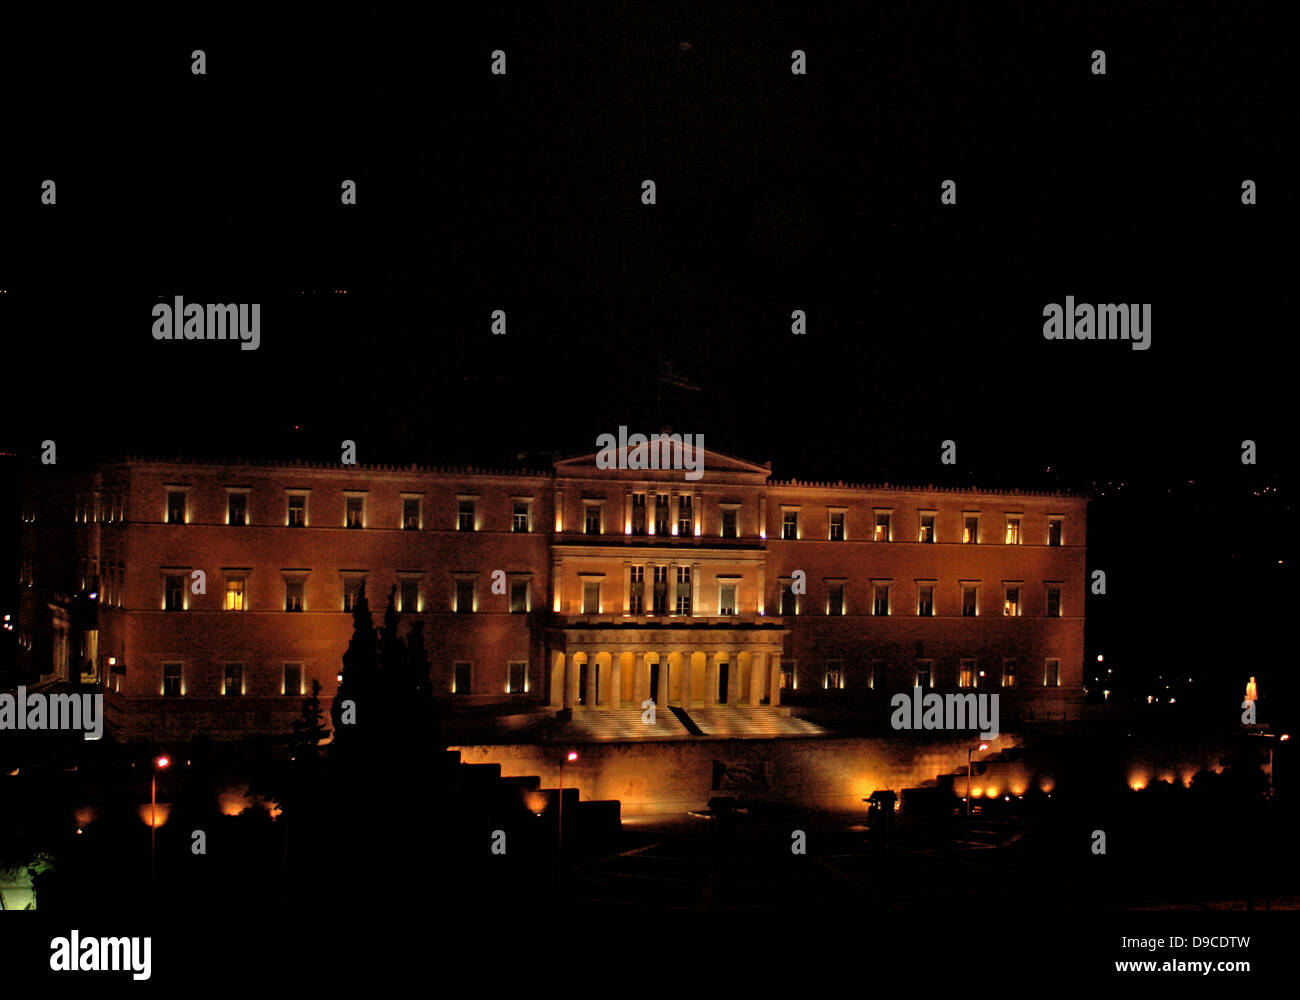 The Parliament Building (Old Palace) at night, Athens, Greece. An example of the early period of Neoclassicism in - Stock Image